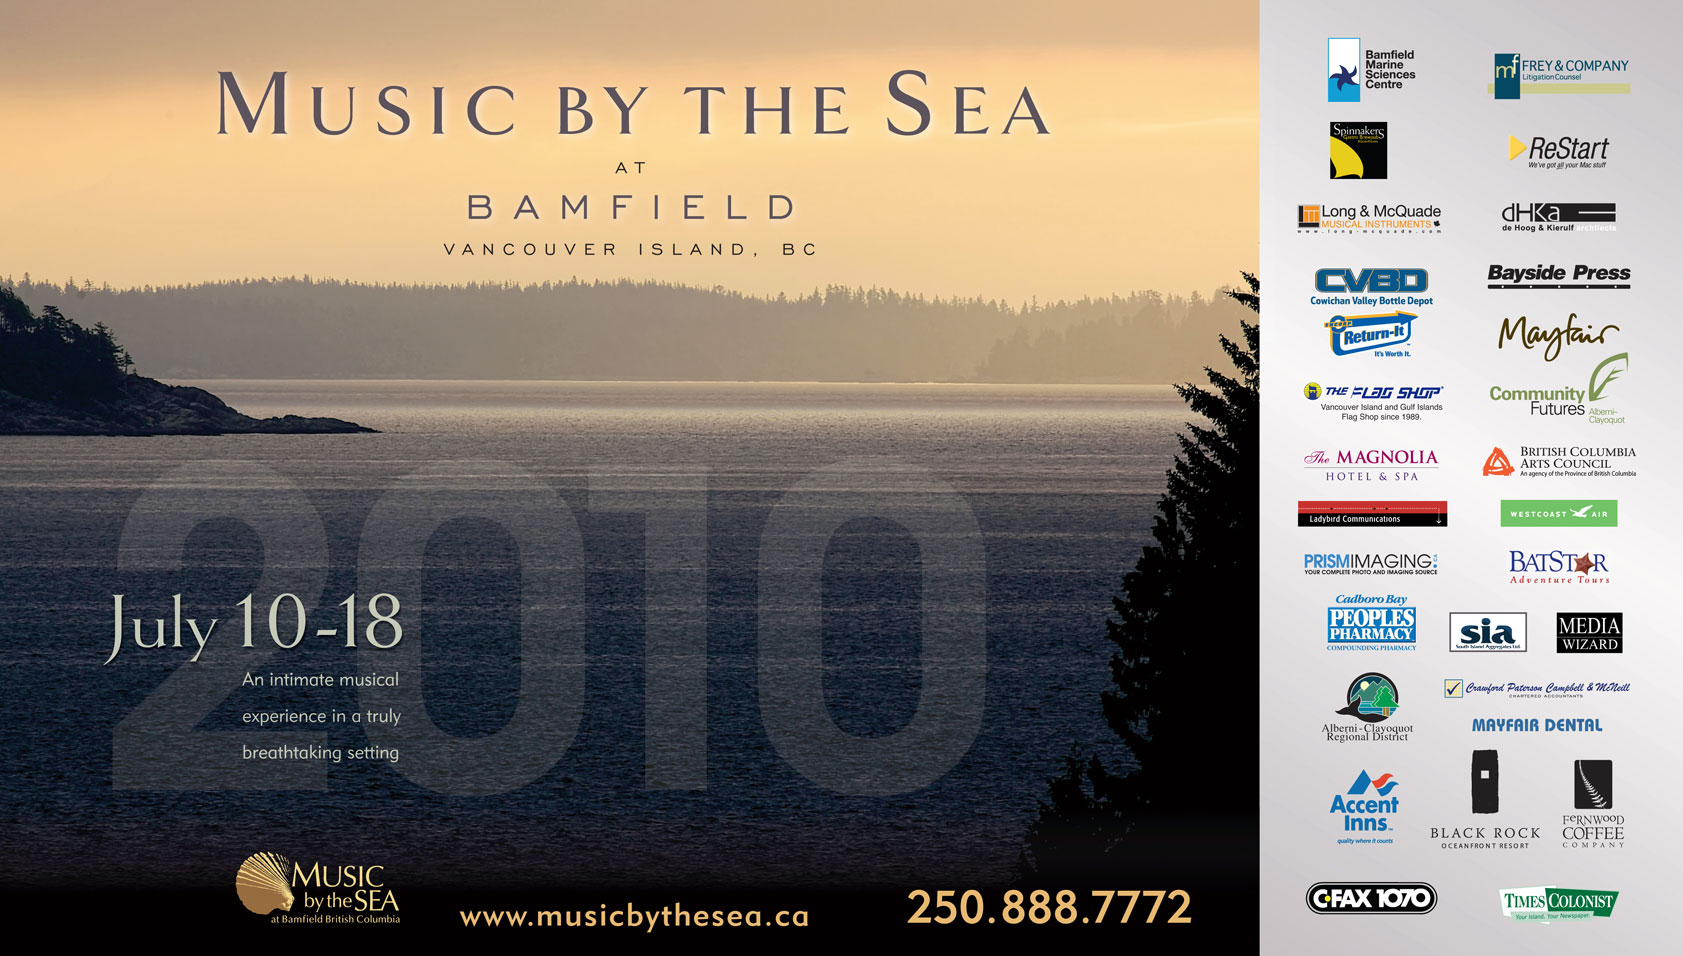 Music by the Sea 2010 poster